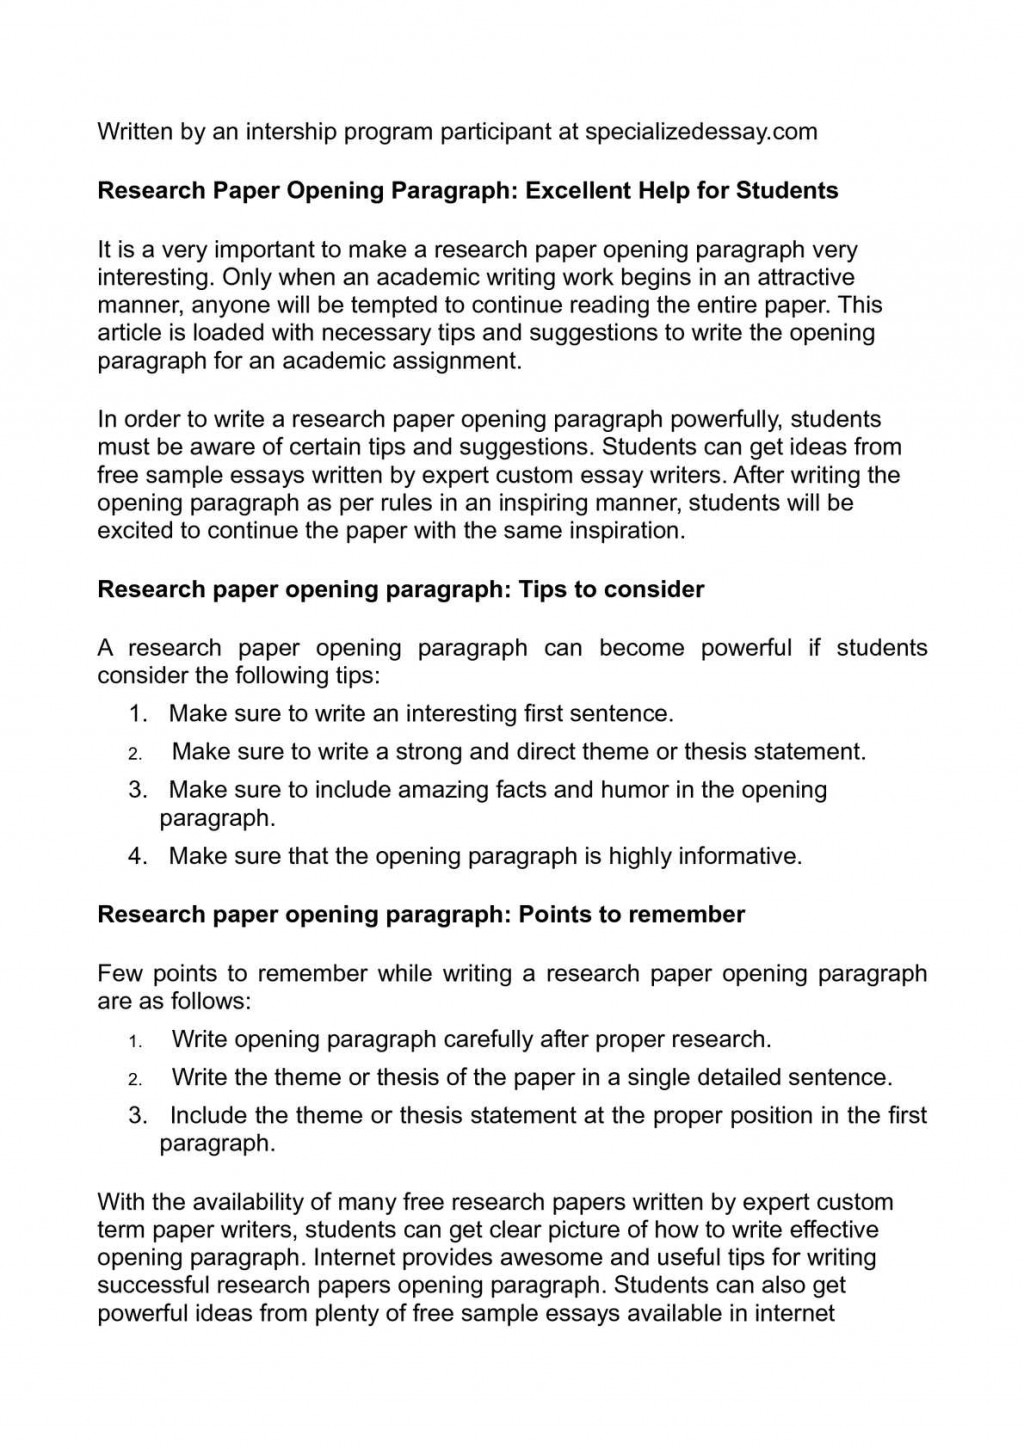 009 How To Make An Introduction Paragraph Of Research Paper Unforgettable A Writing For Large